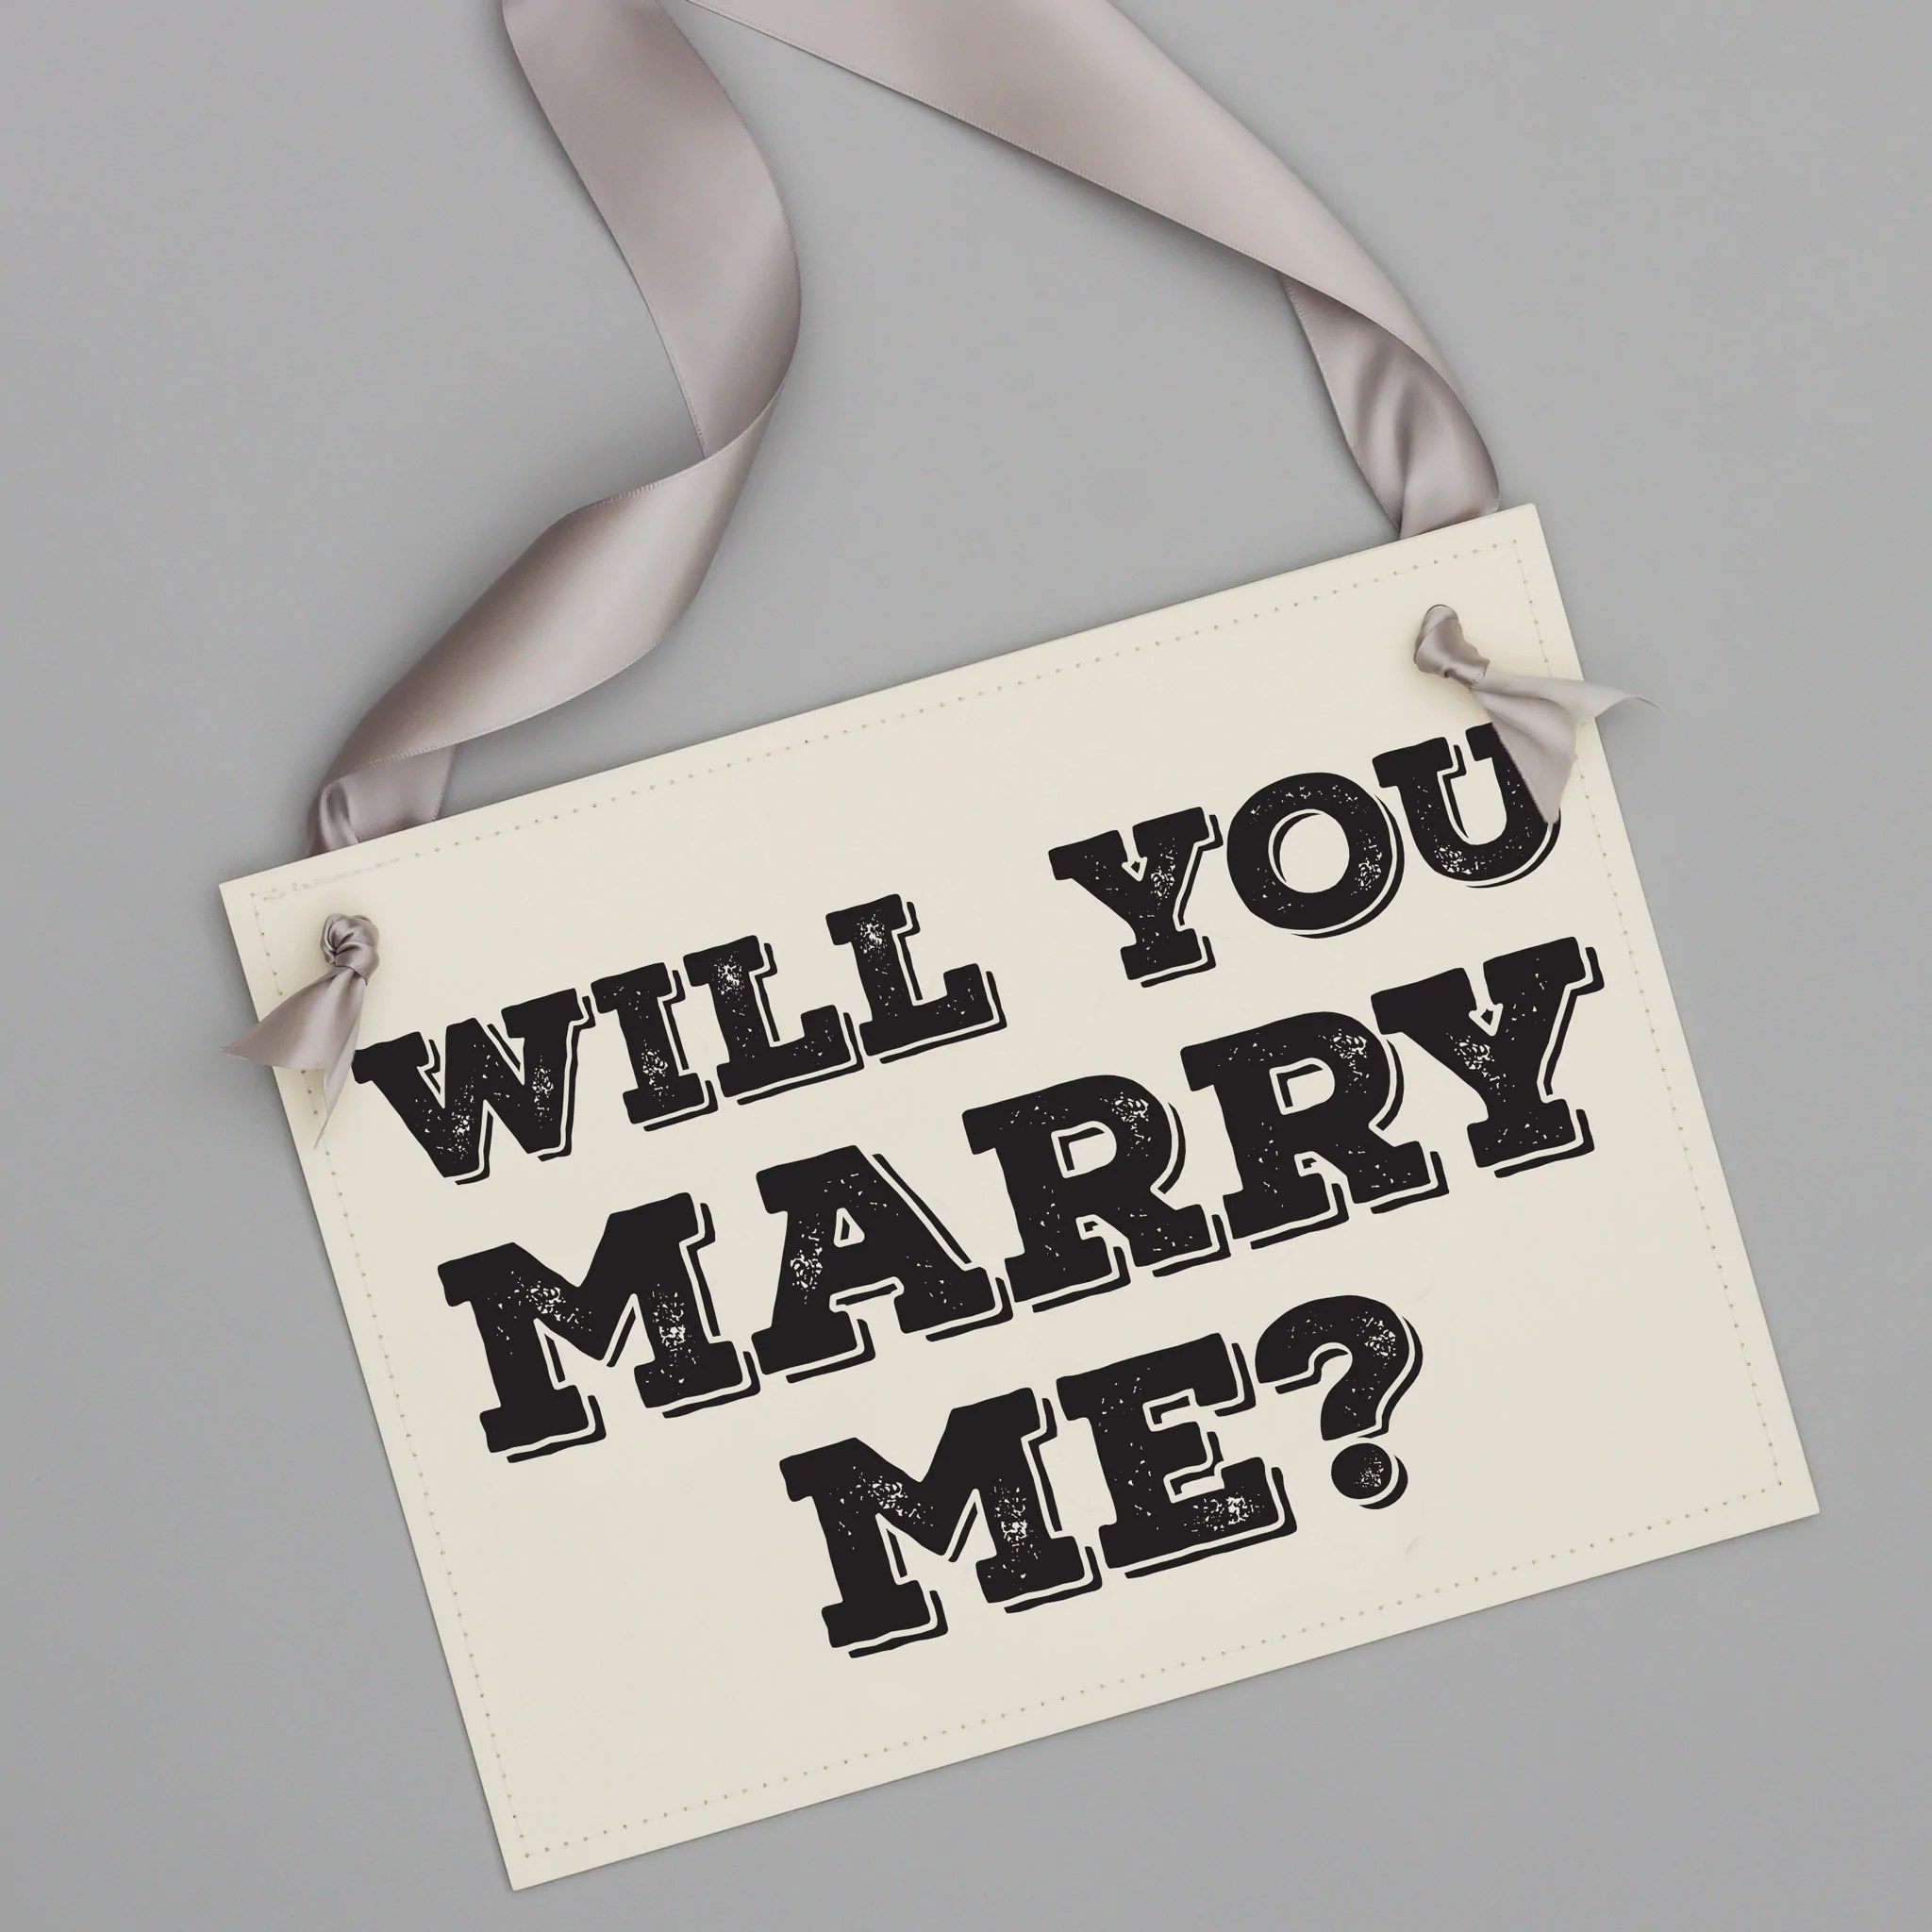 Will You Marry Me Proposal Signs  Creative Ways To